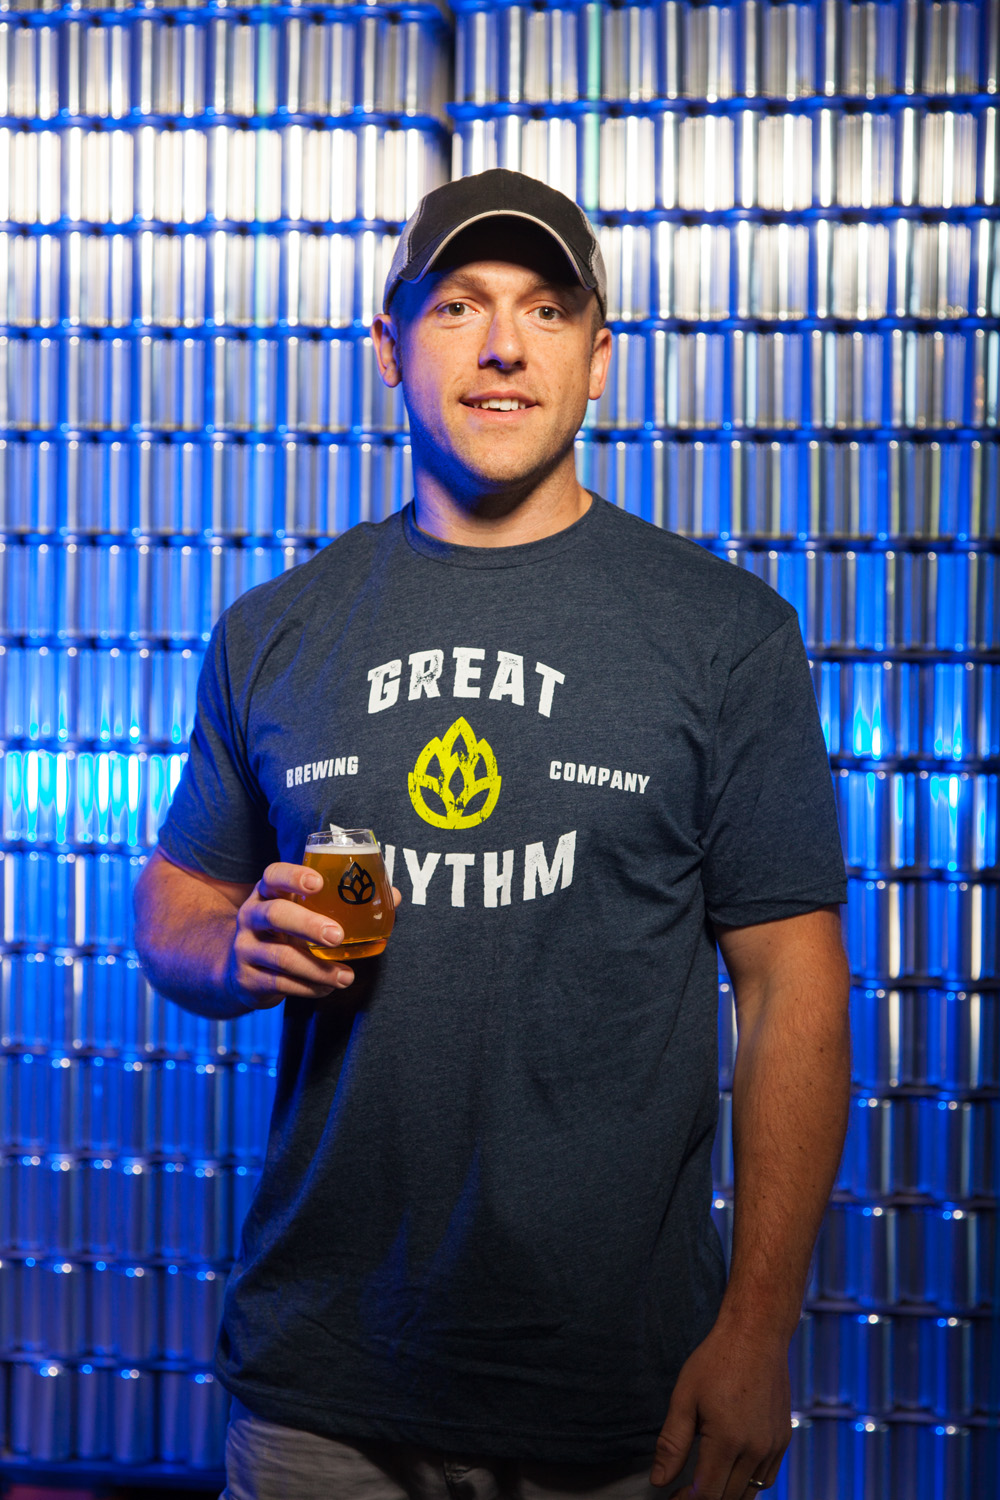 Scott Thornton, Brewmaster at Great Rhythm Brewing Co. Portsmouth, NH Established in 2012